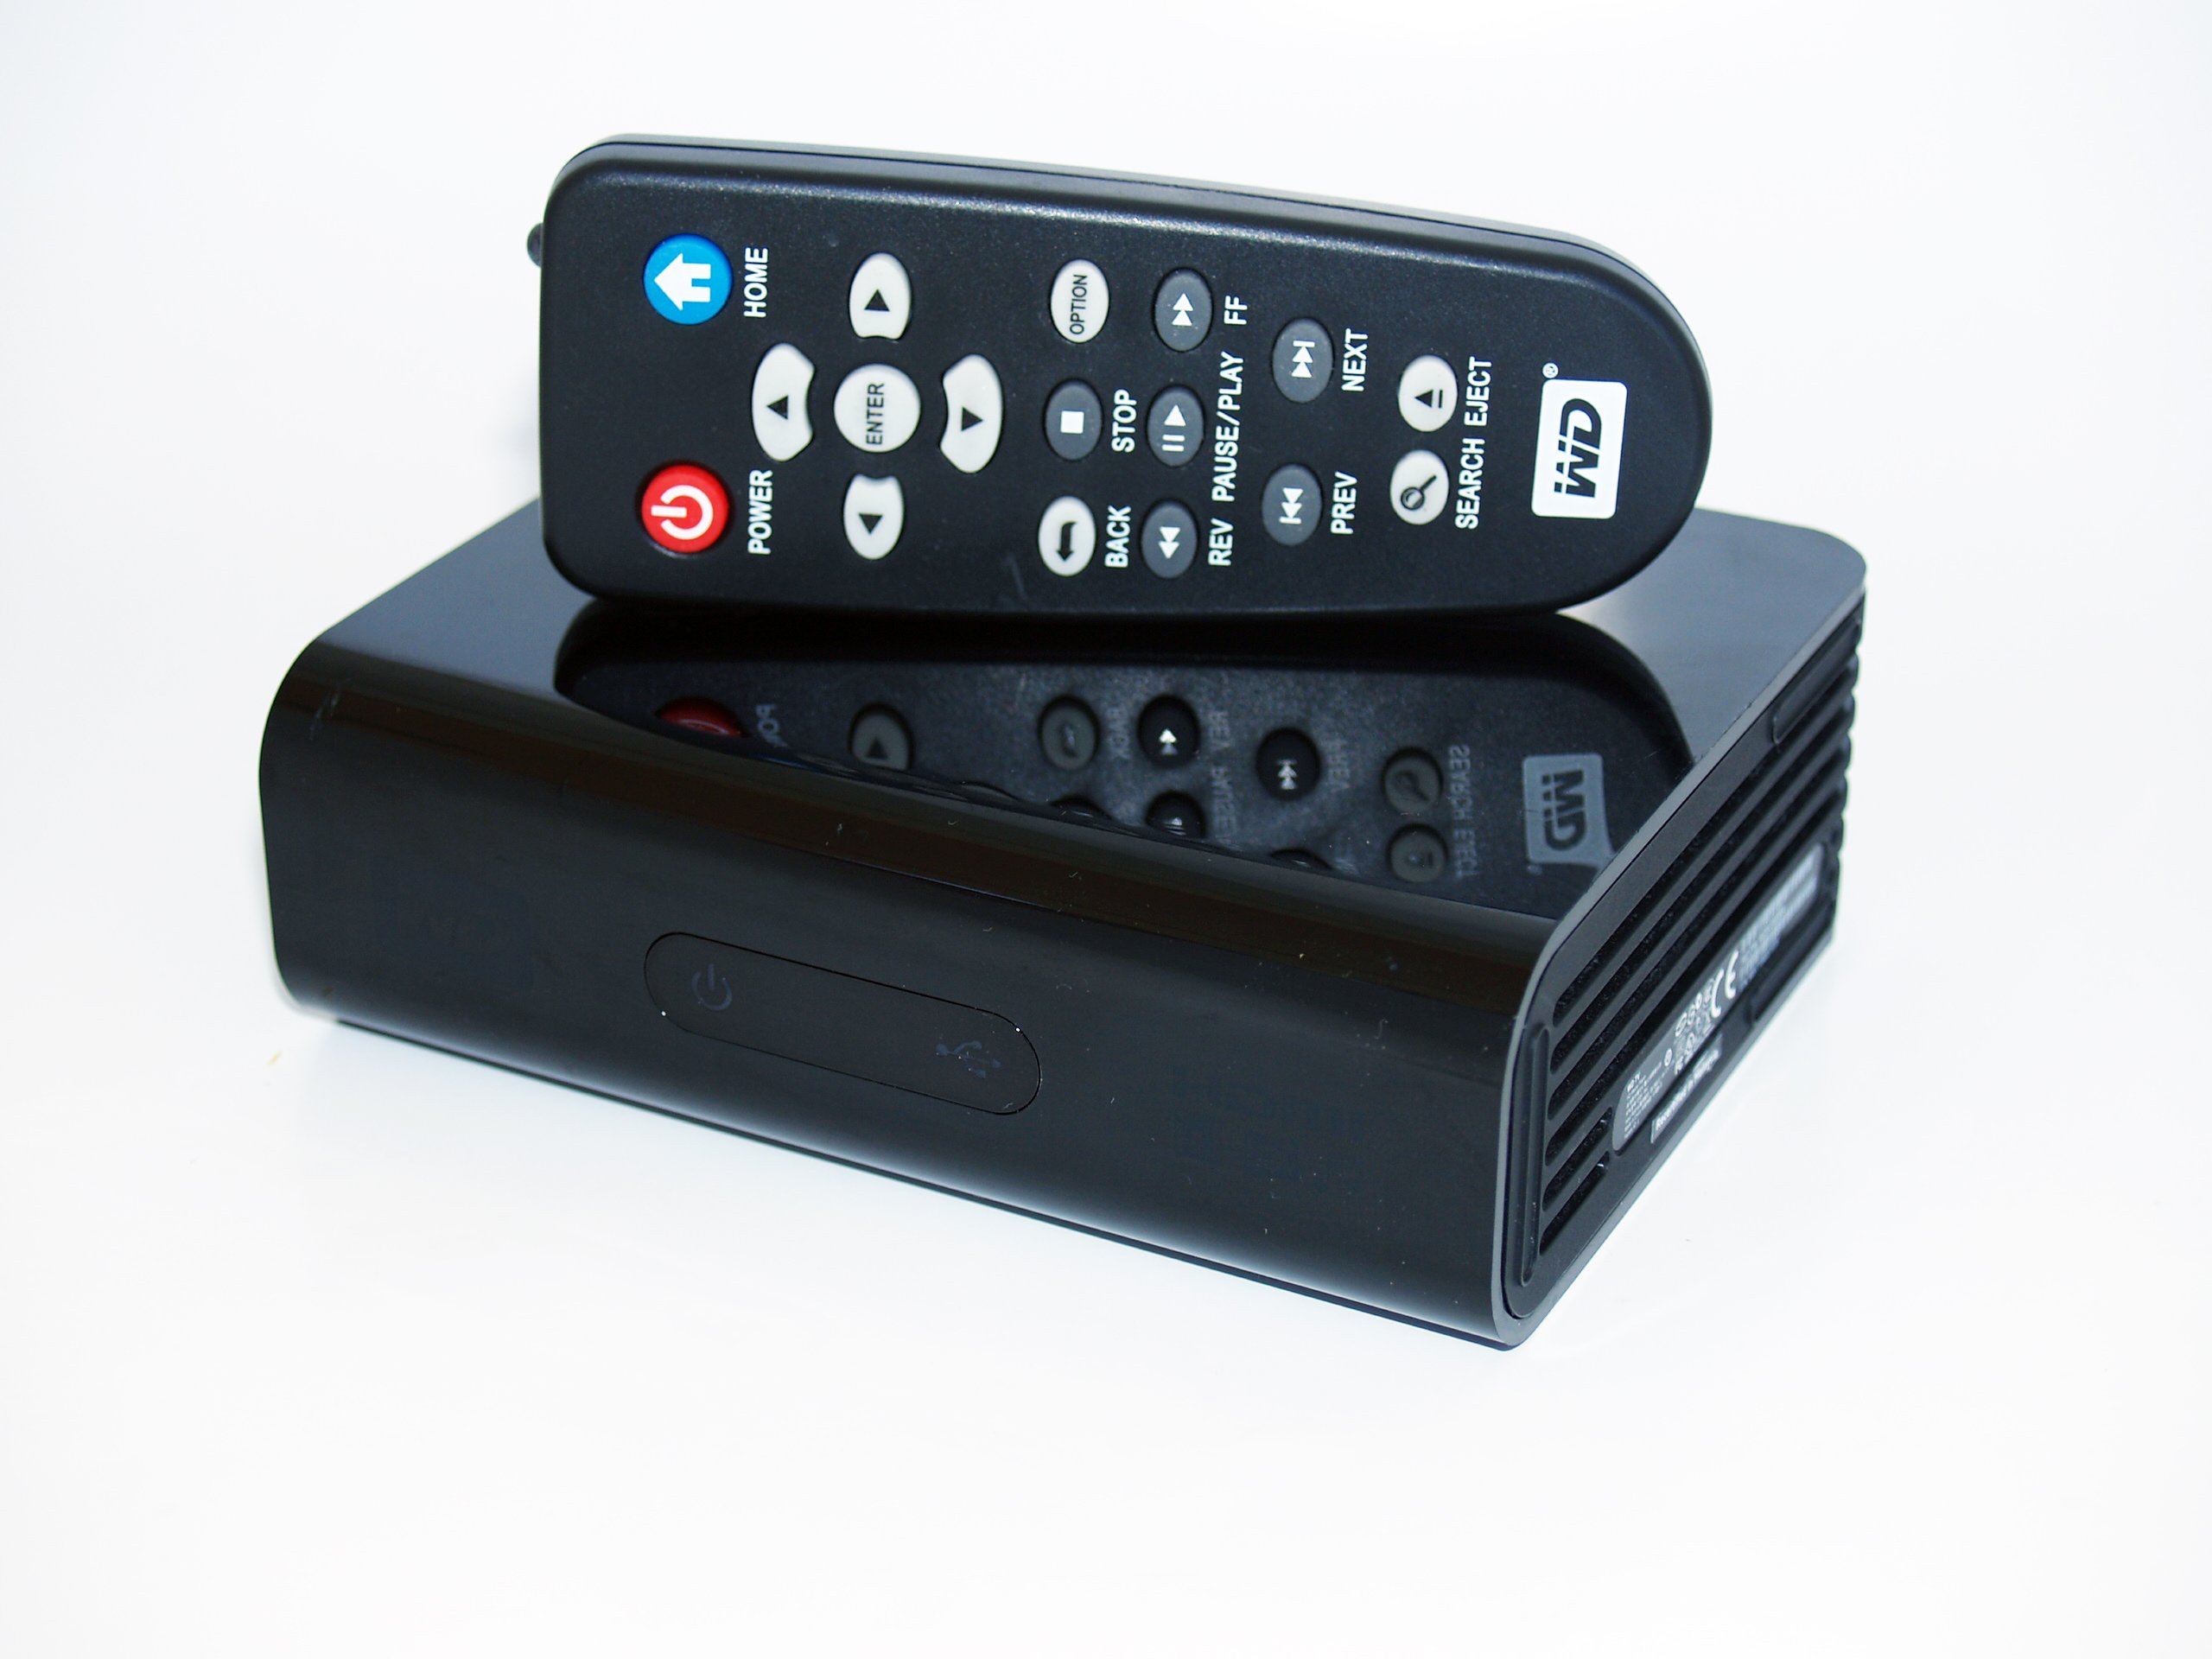 WD TV HD Media Player by Western Digital